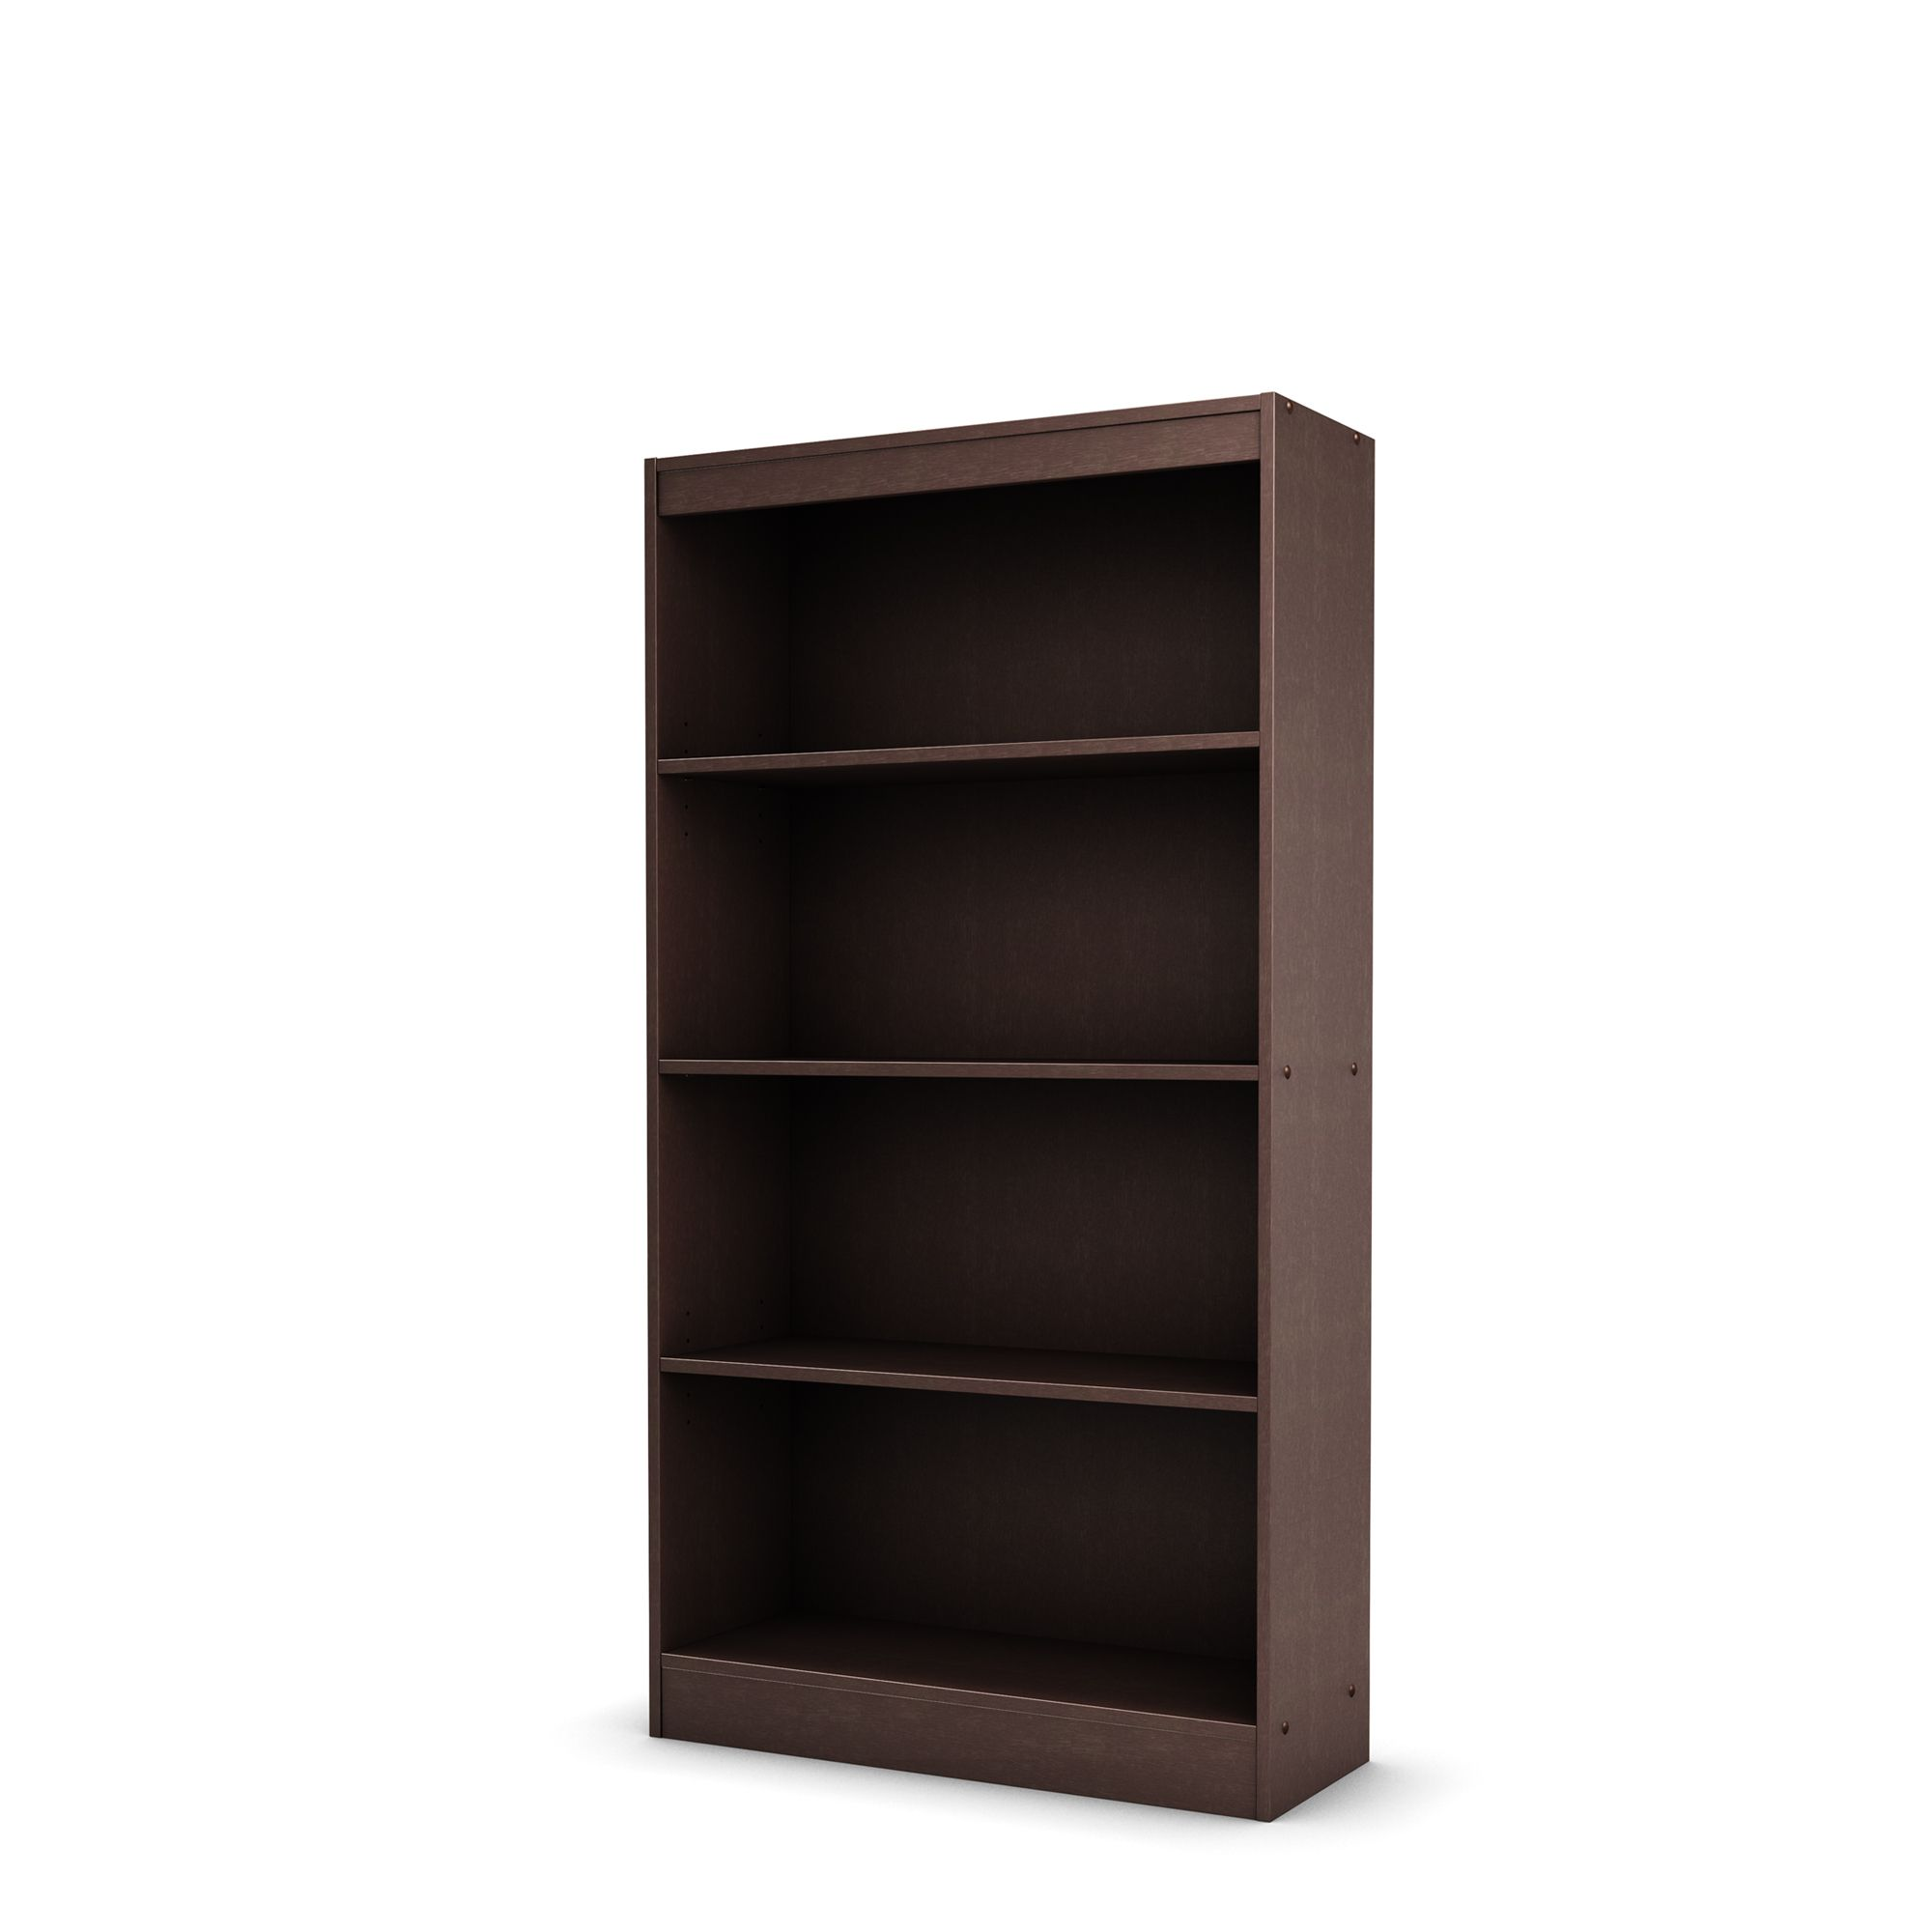 South Shore Essentials Collection Four Shelf Bookcase, Chocolate